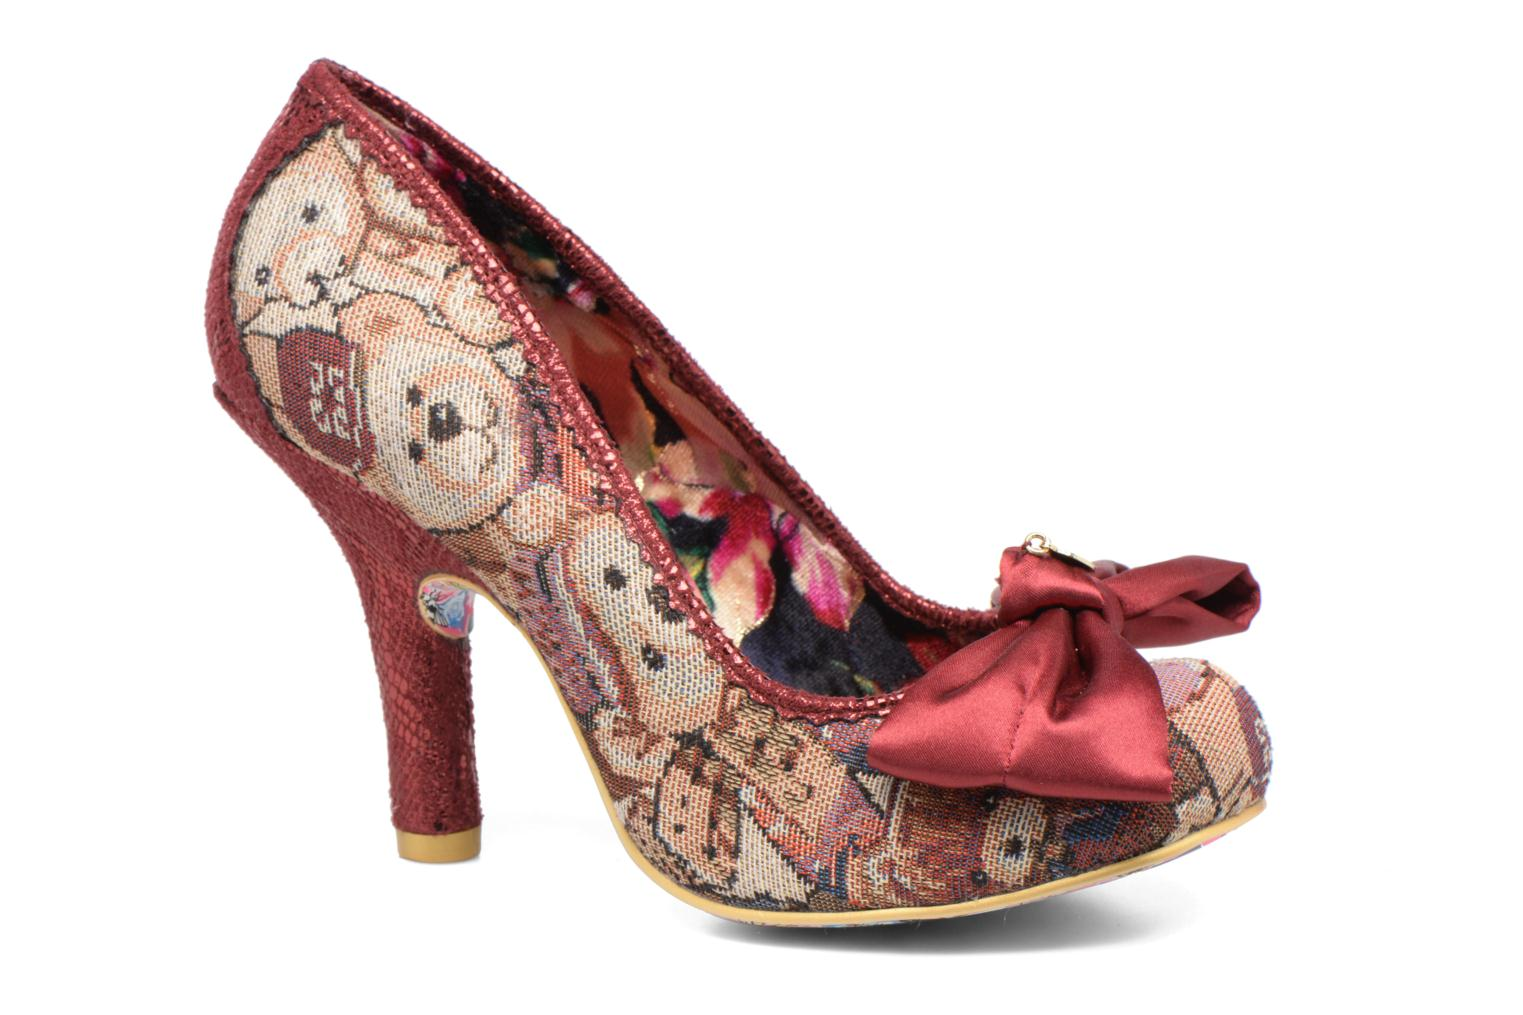 Marques Chaussure femme Irregular Choice femme French Fries Red Multi Fabric